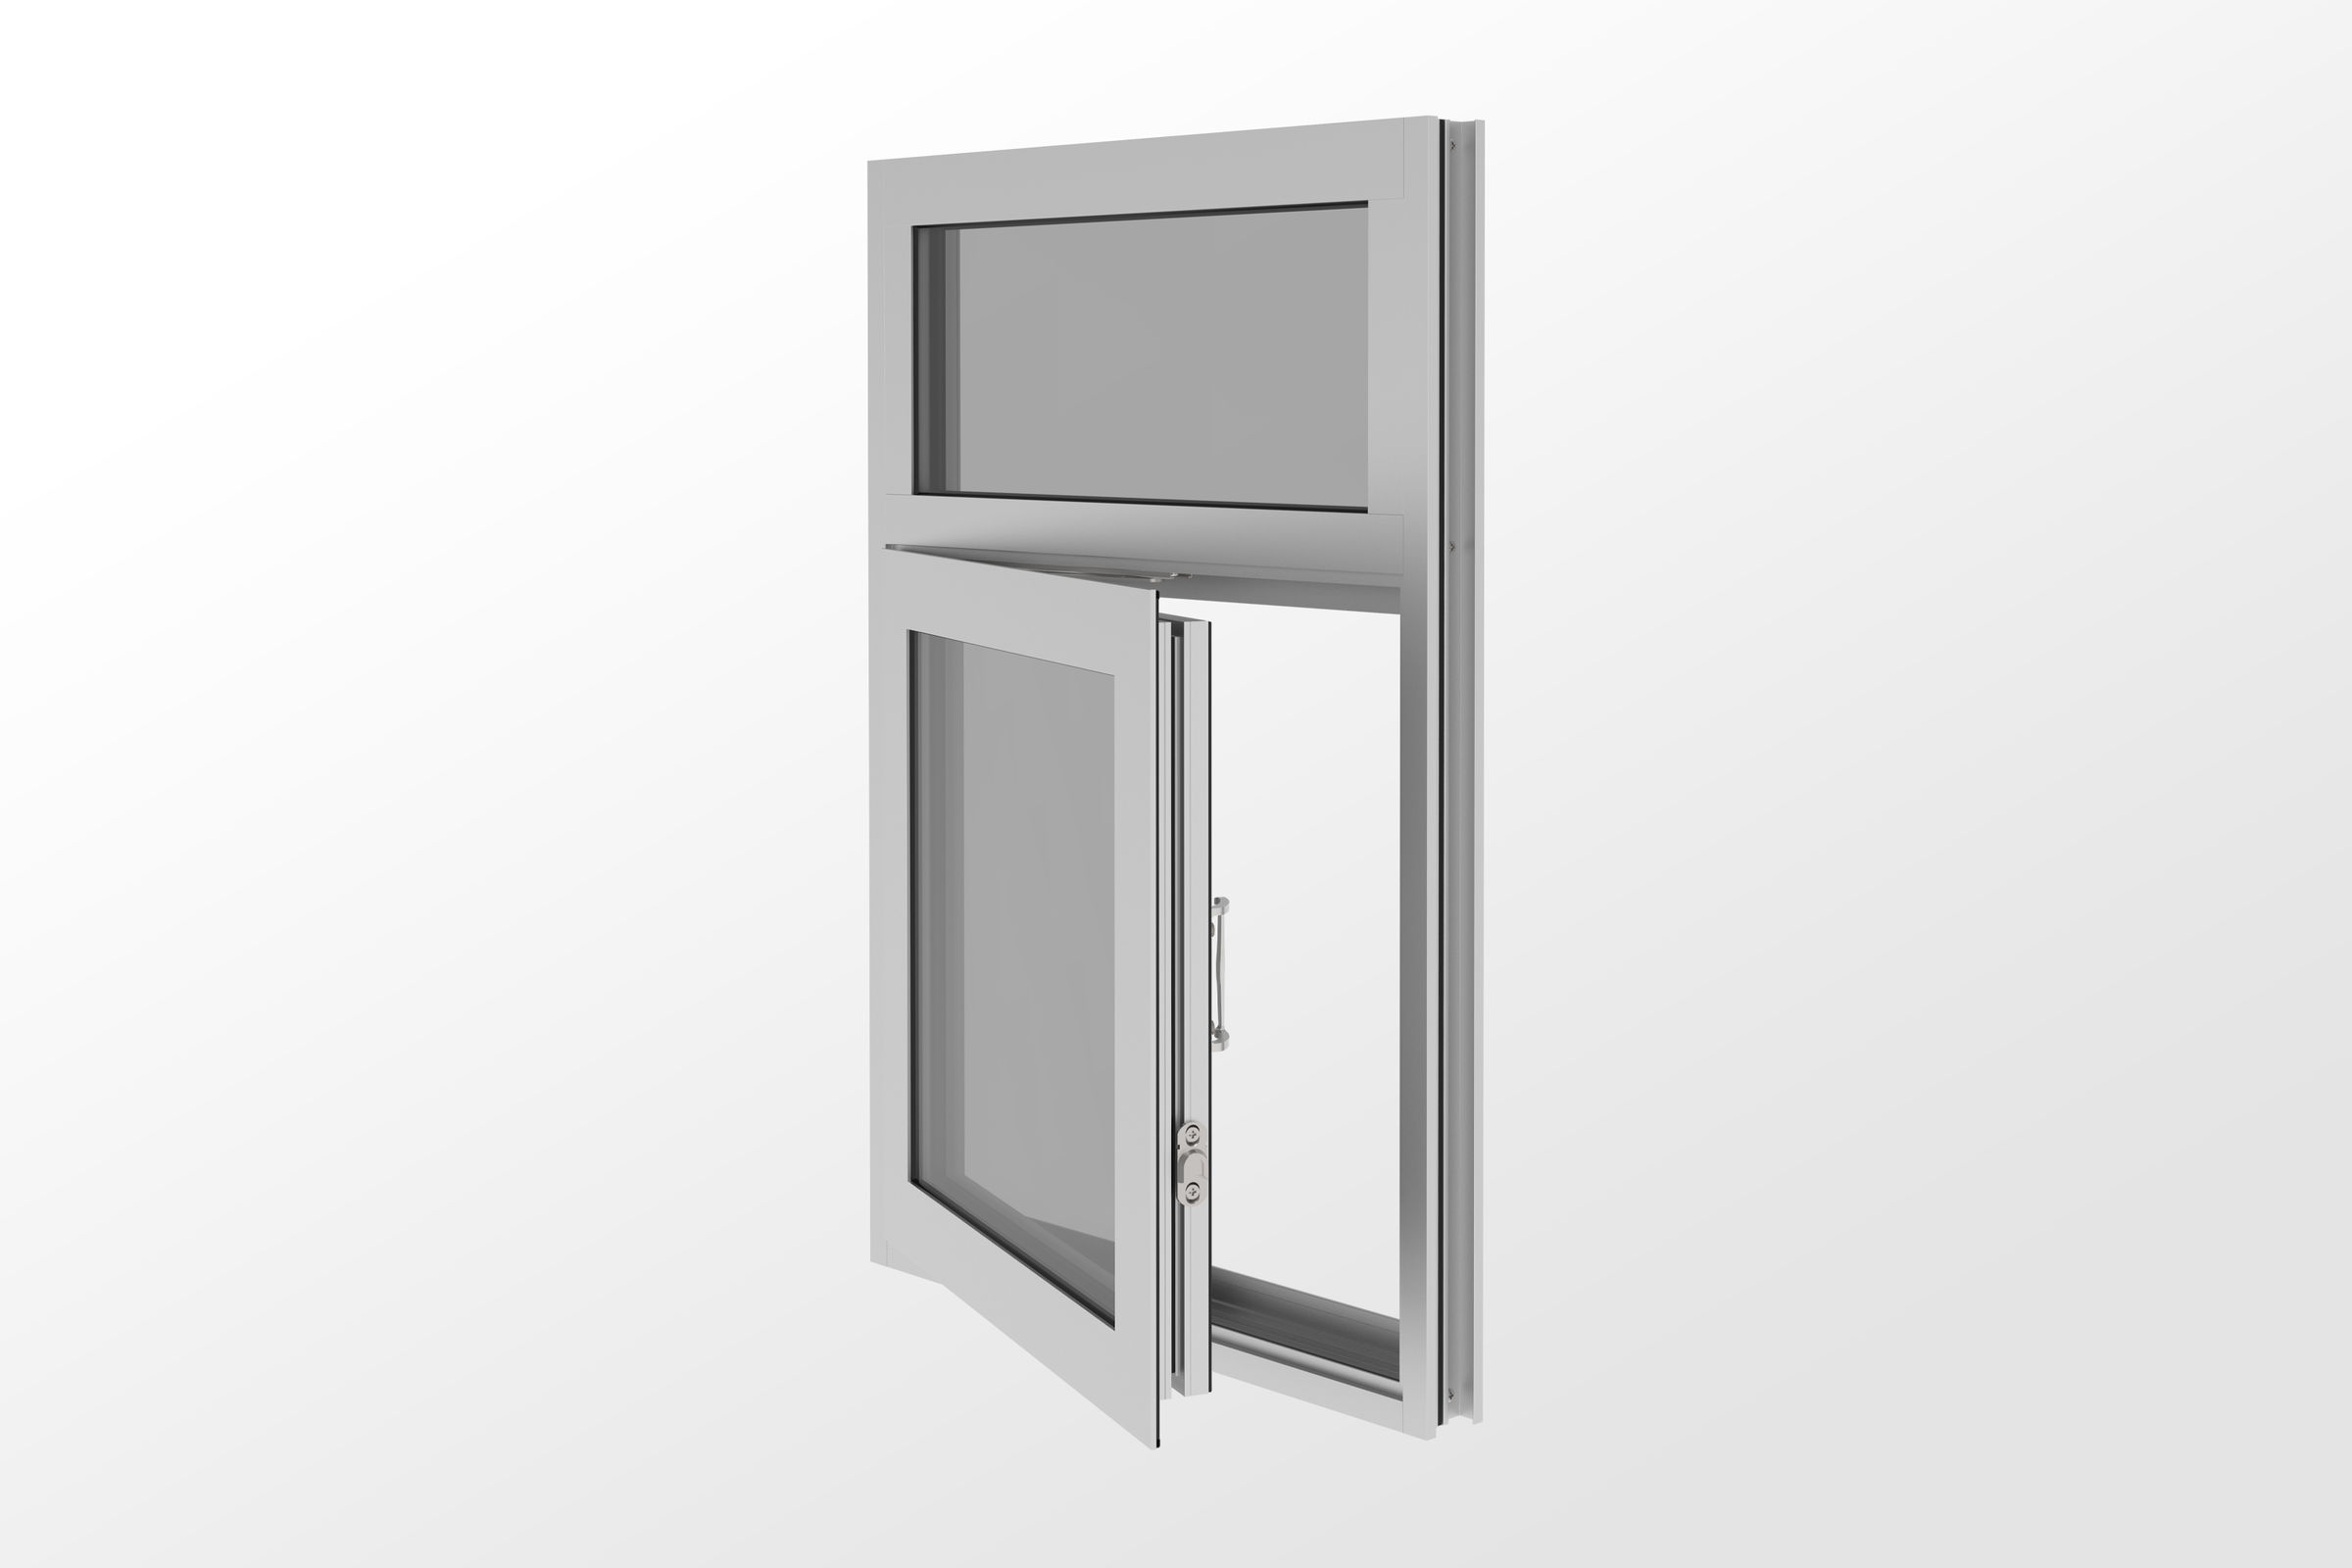 YOW 225 TUH Thermally Broken, Impact and Blast Resistant Operable Window